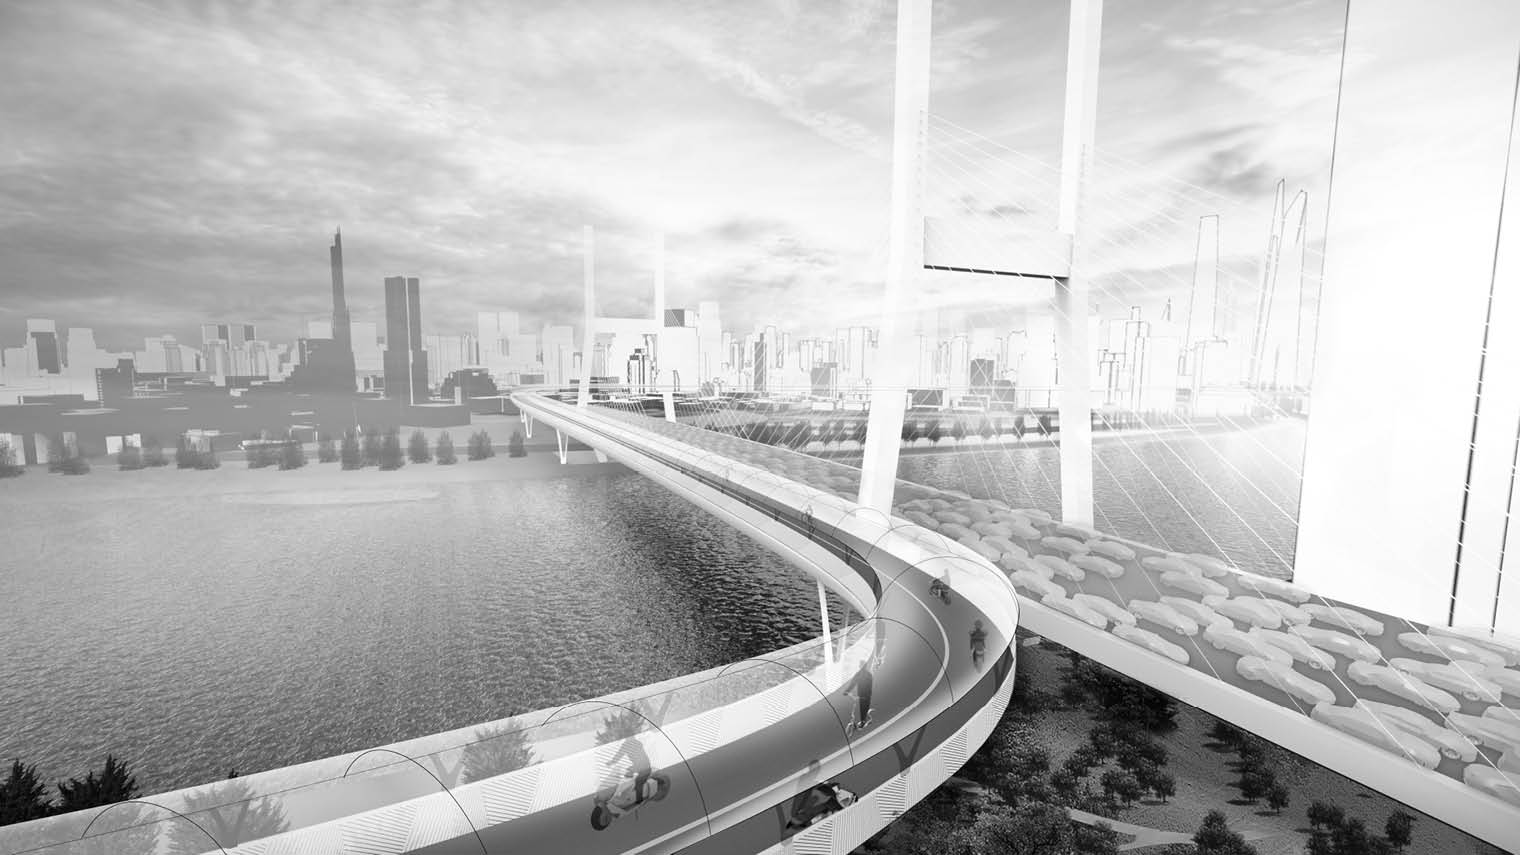 elevated cycle path illustration over river in city